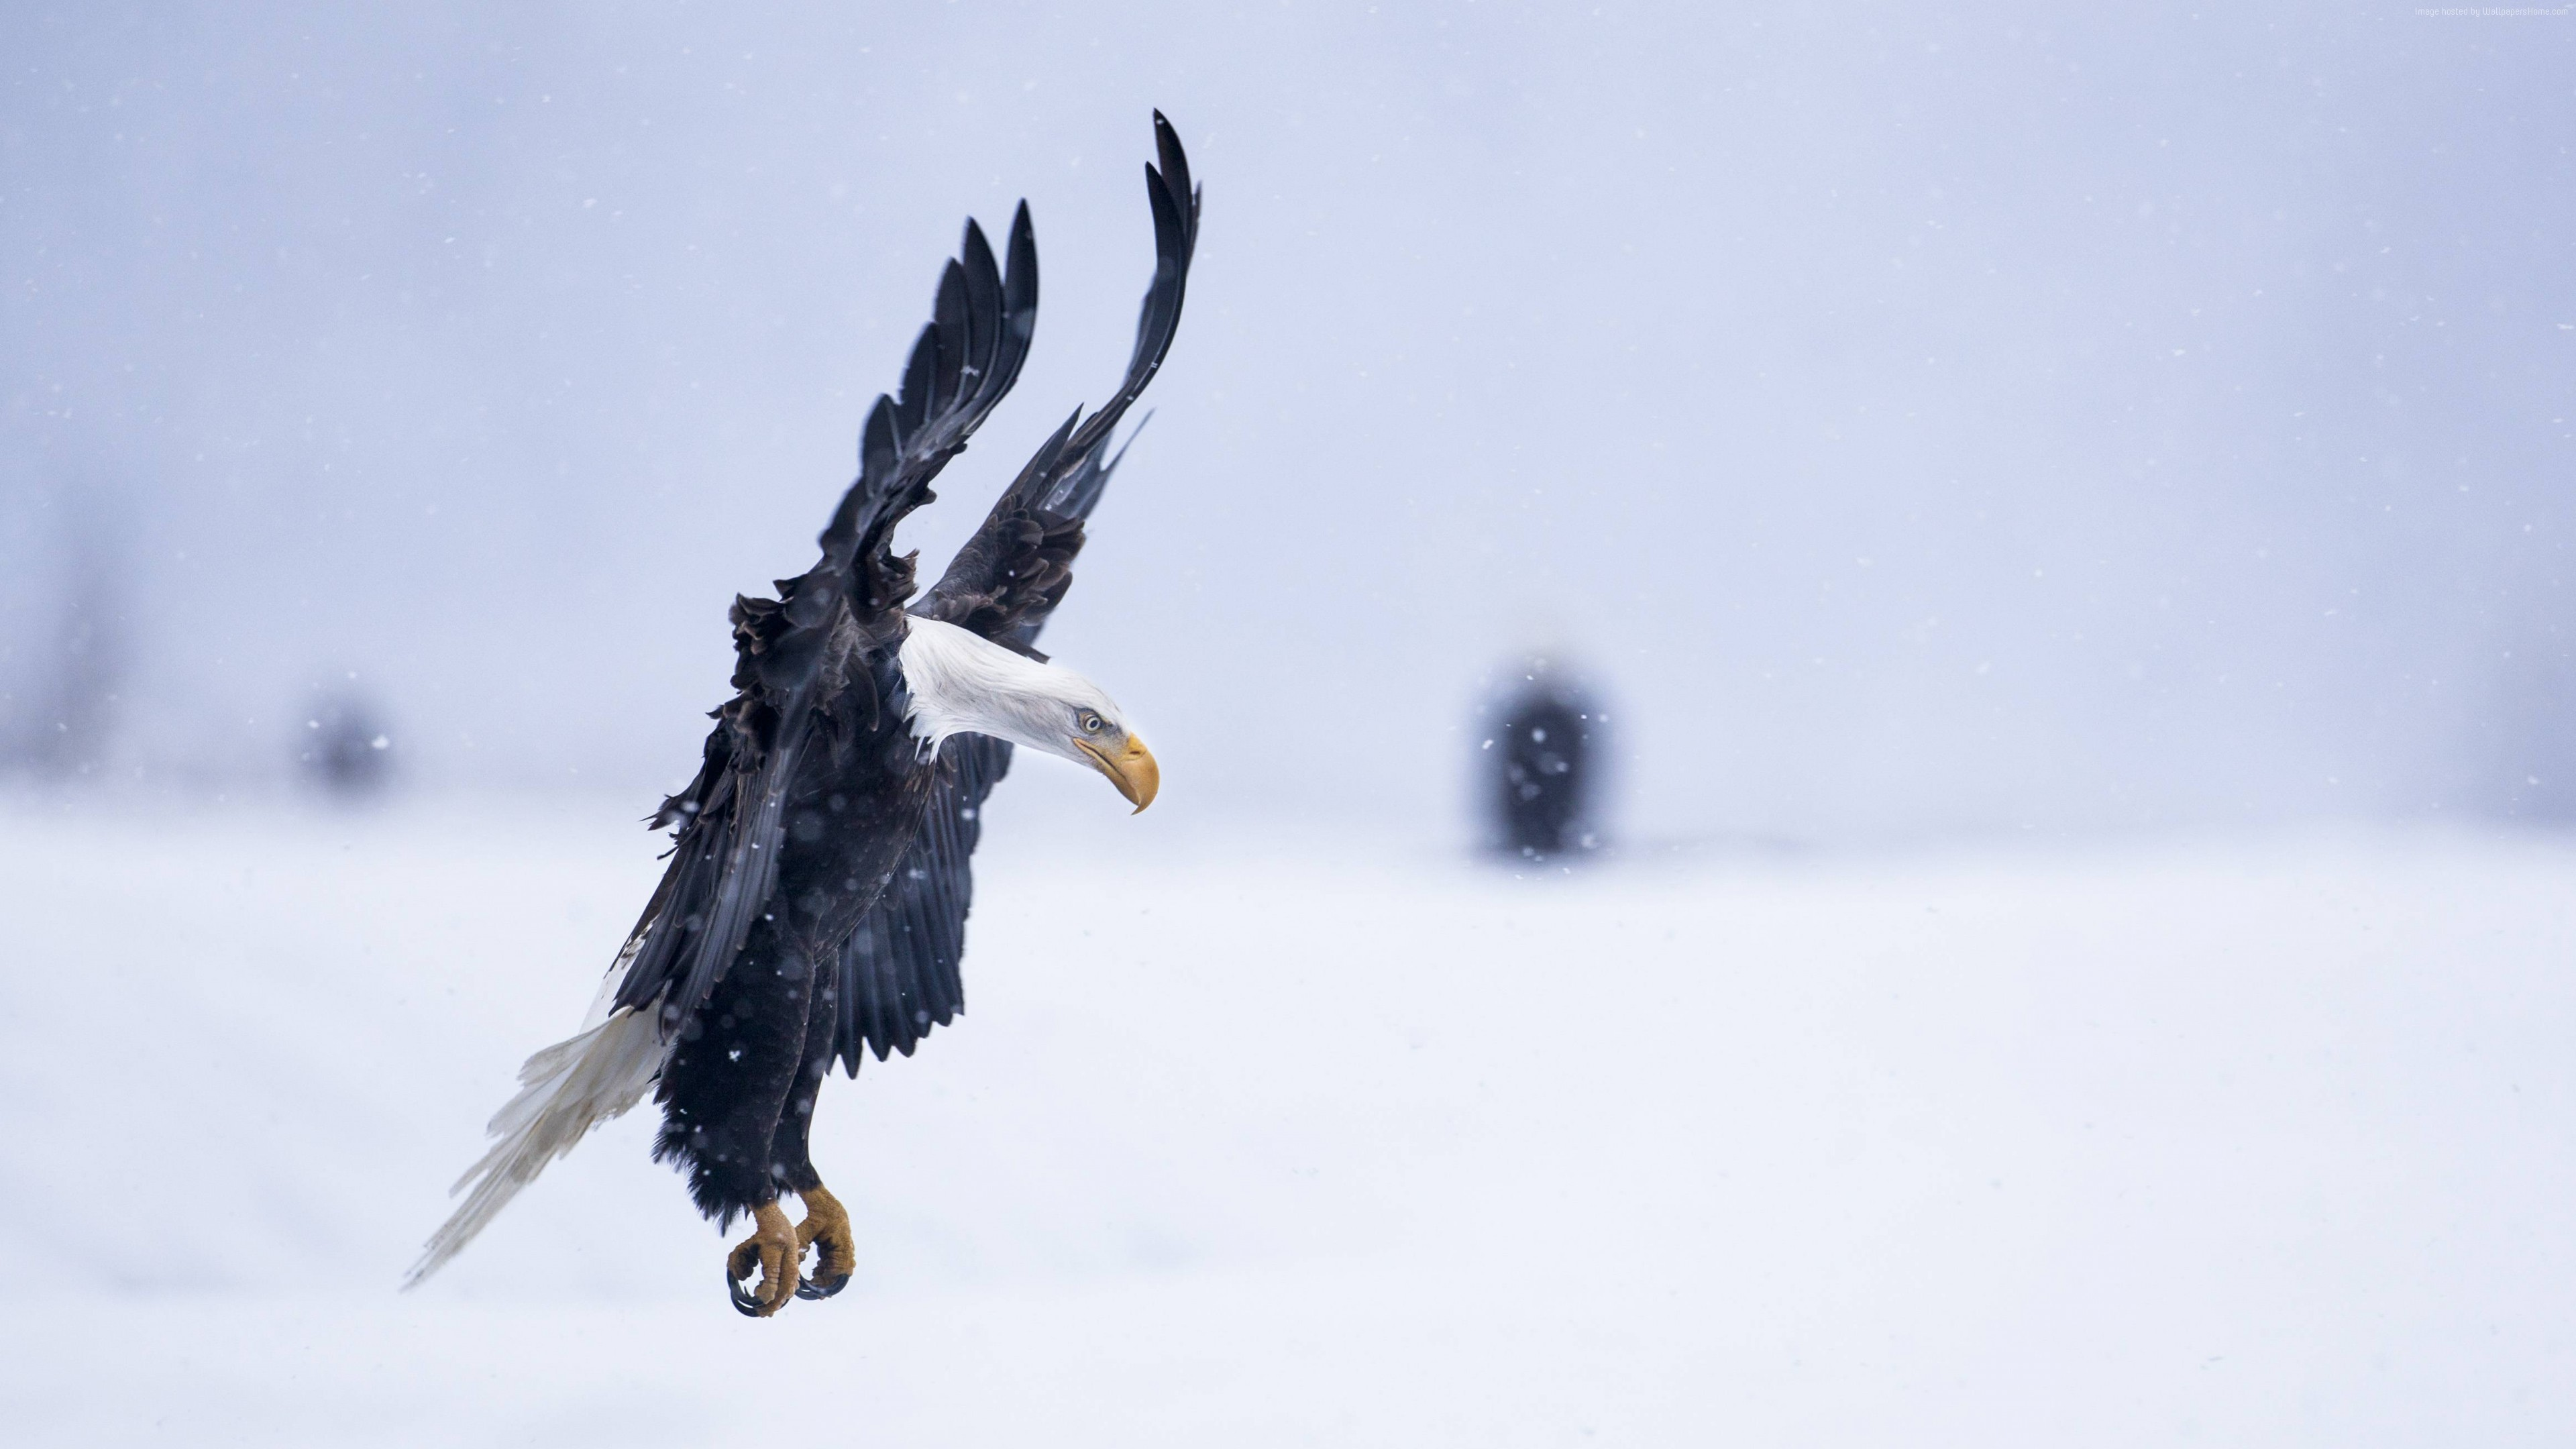 Wallpaper Eagle, Alaska, 5k, 4k wallpaper, HD, flight, winter, snow, National Geographics, Animals